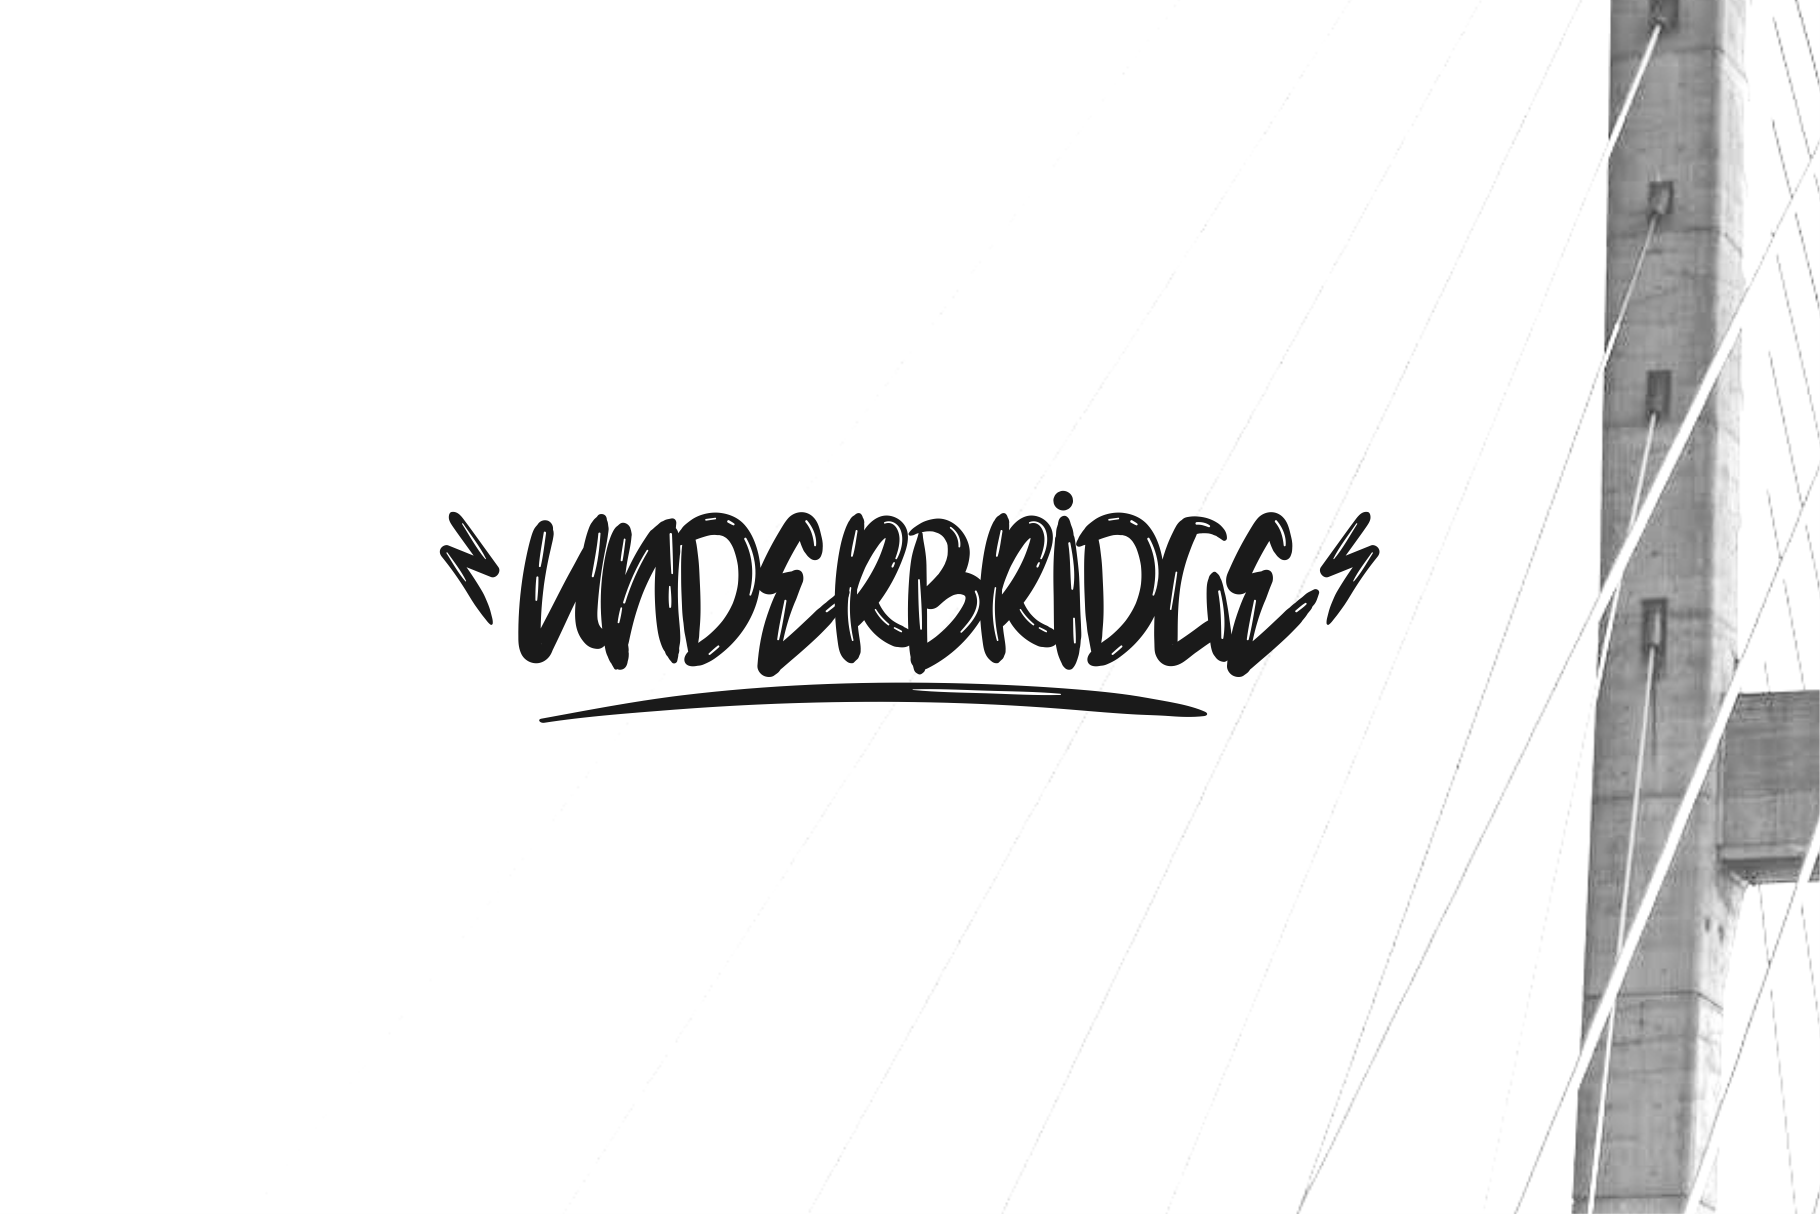 Underbridge example image 1